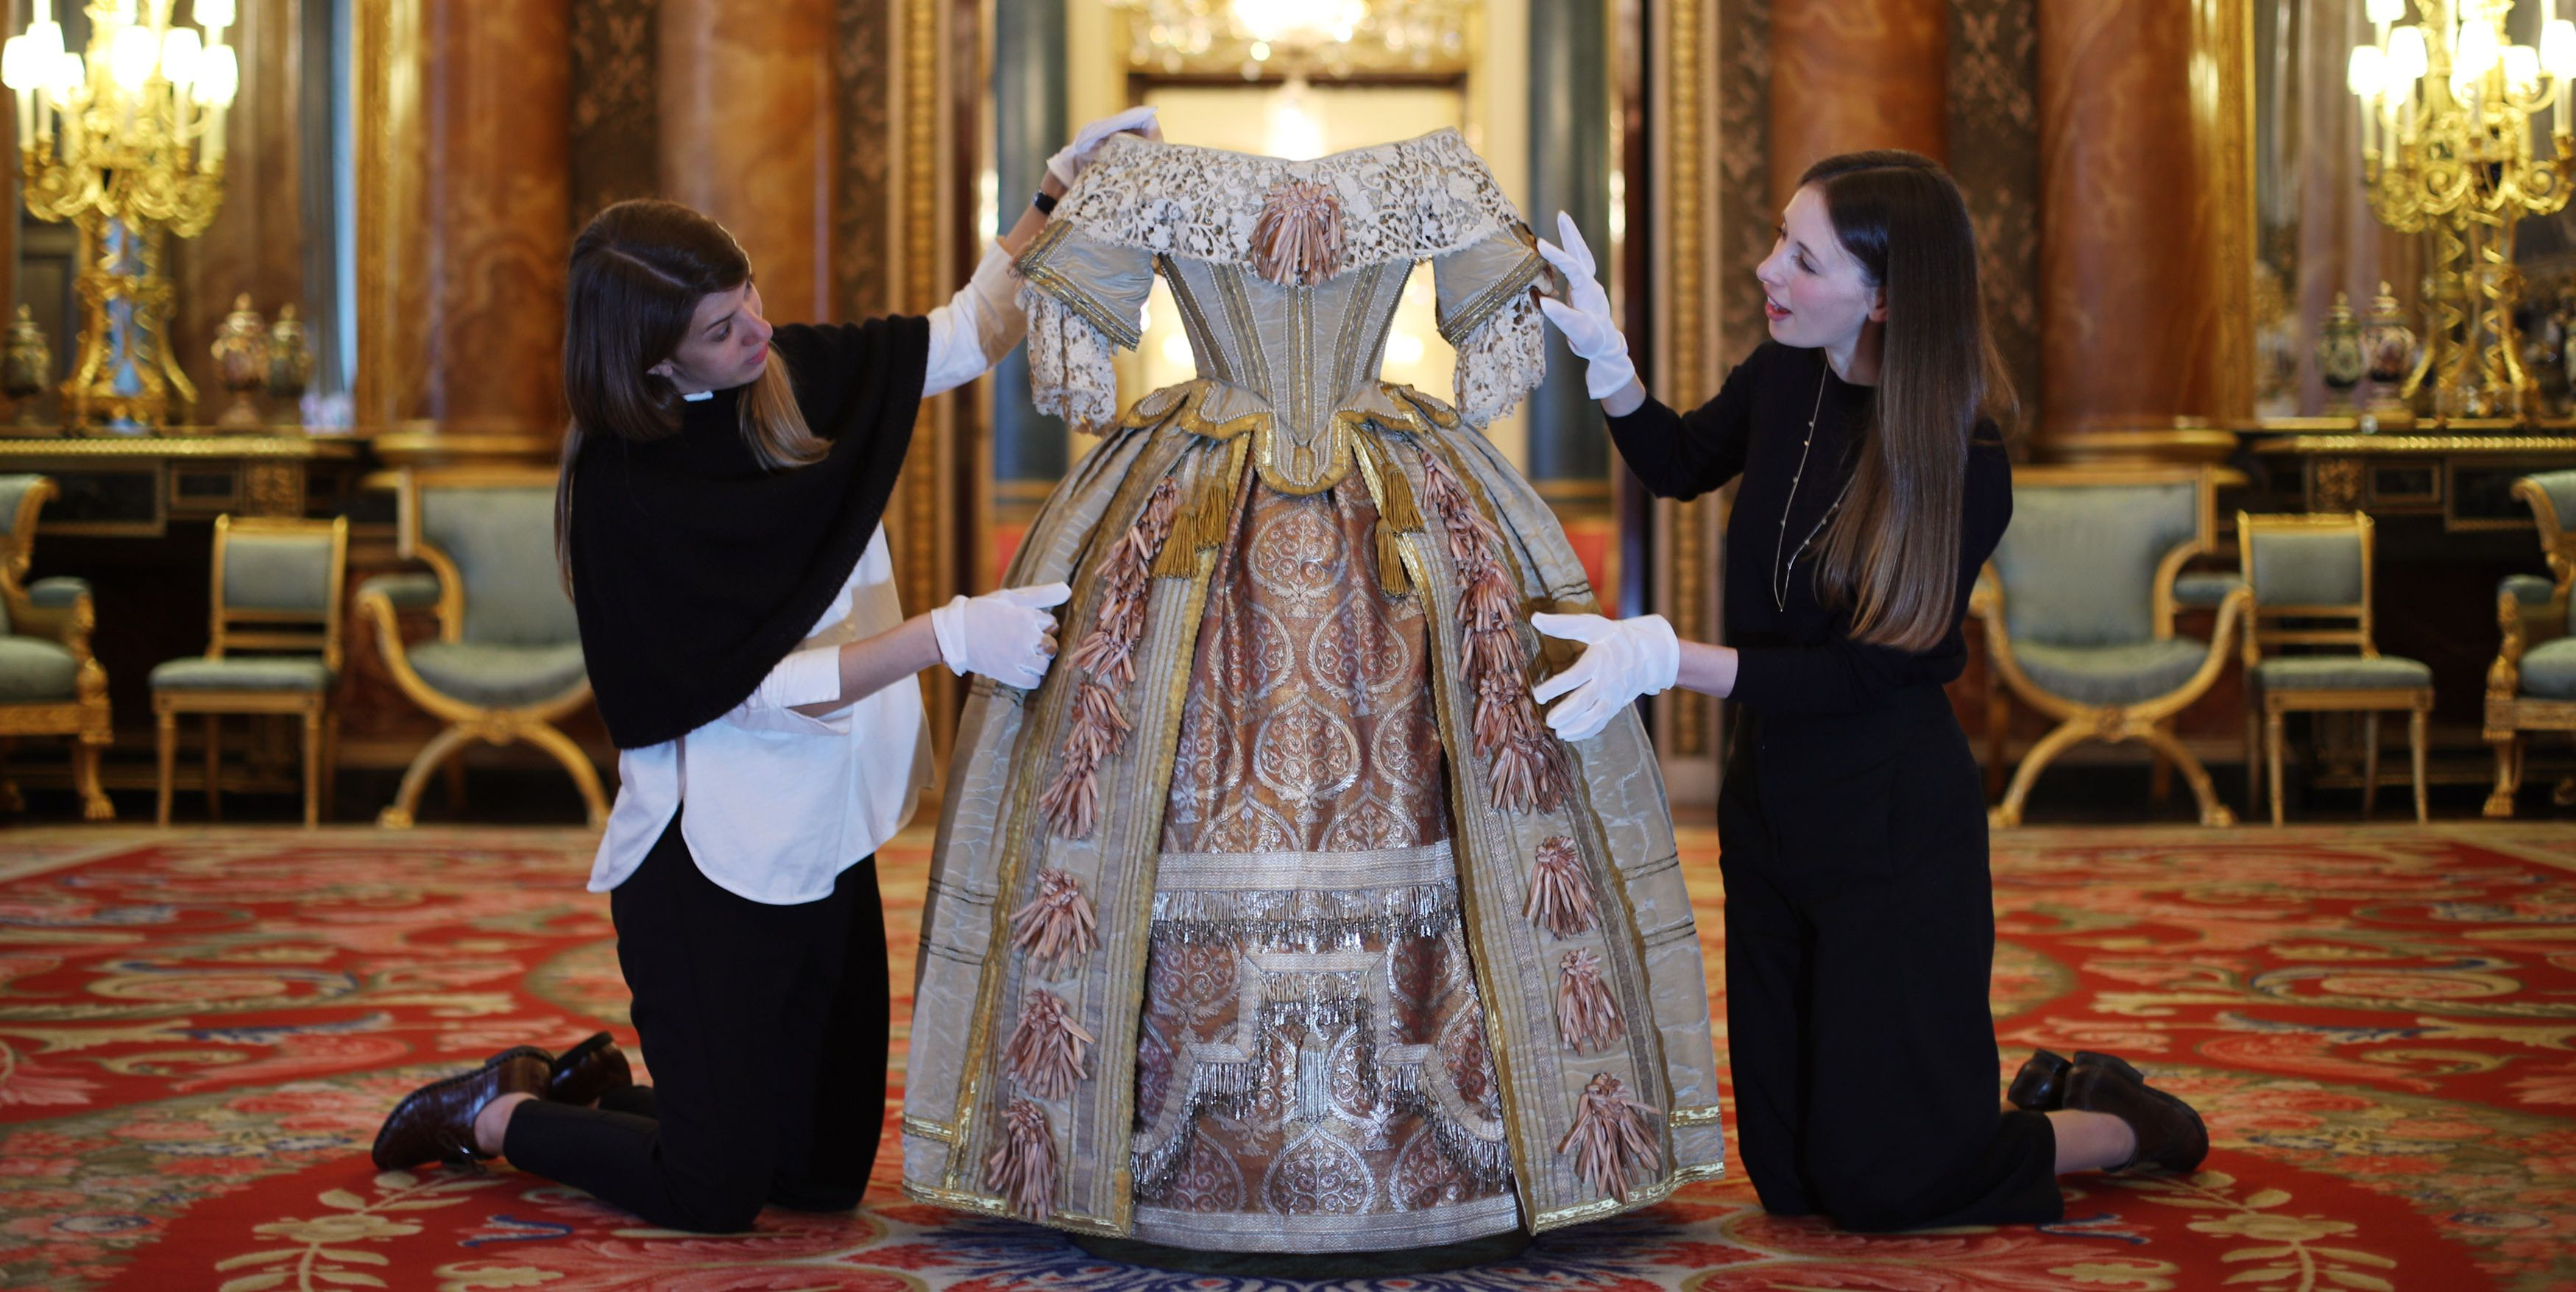 A Queen Victoria Exhibition Will Open At Buckingham Palace